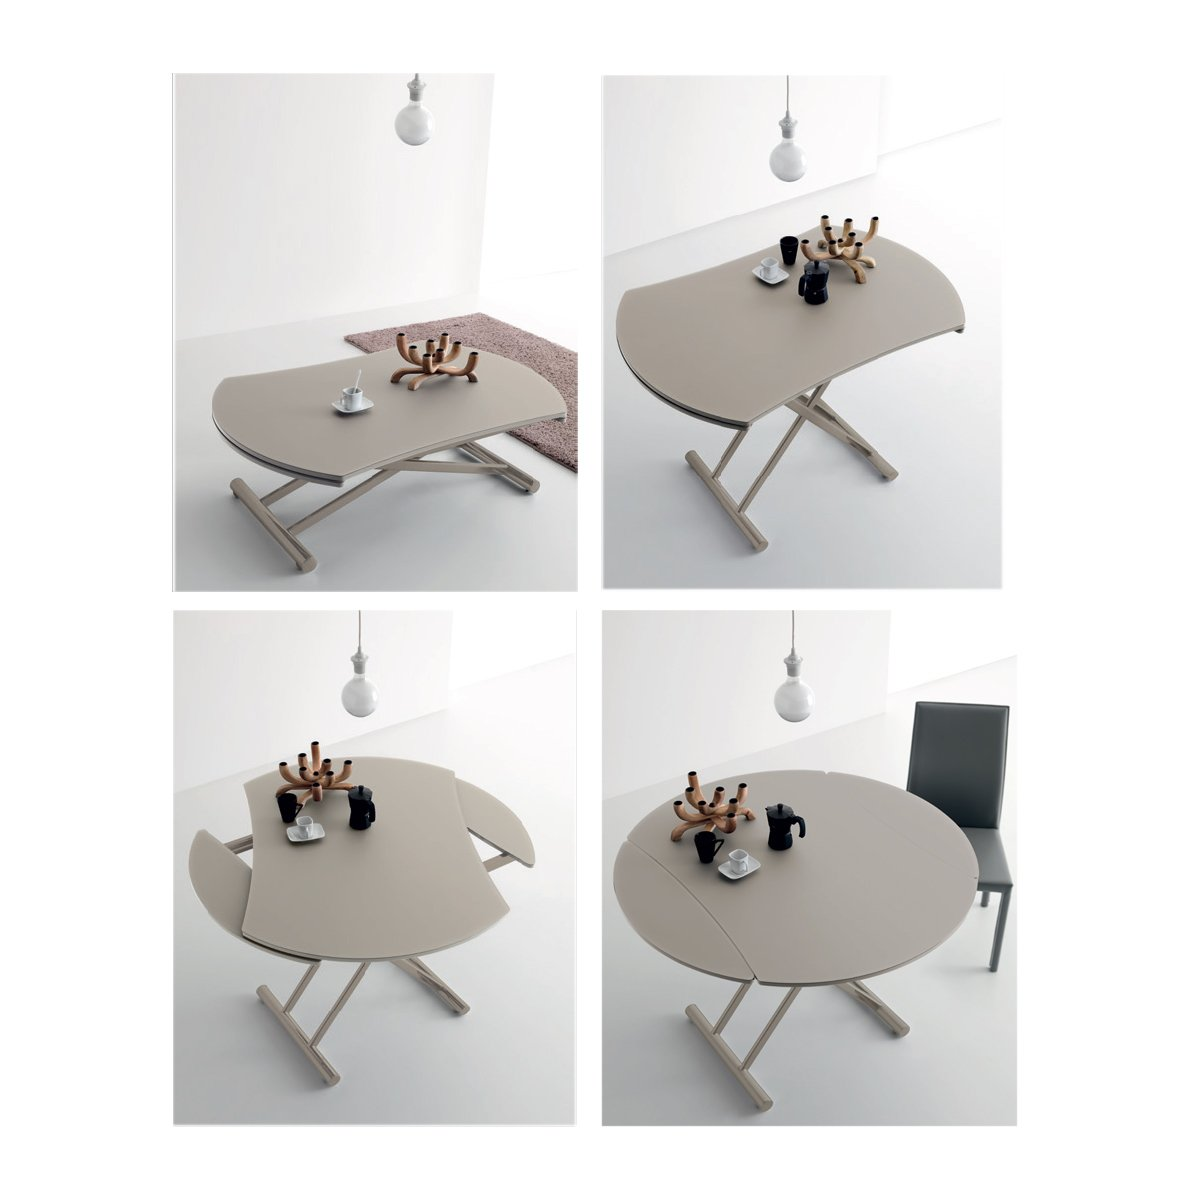 Table basse relevable ronde nice verre opaque meubles et atmosph re - Table de salon plateau relevable ...